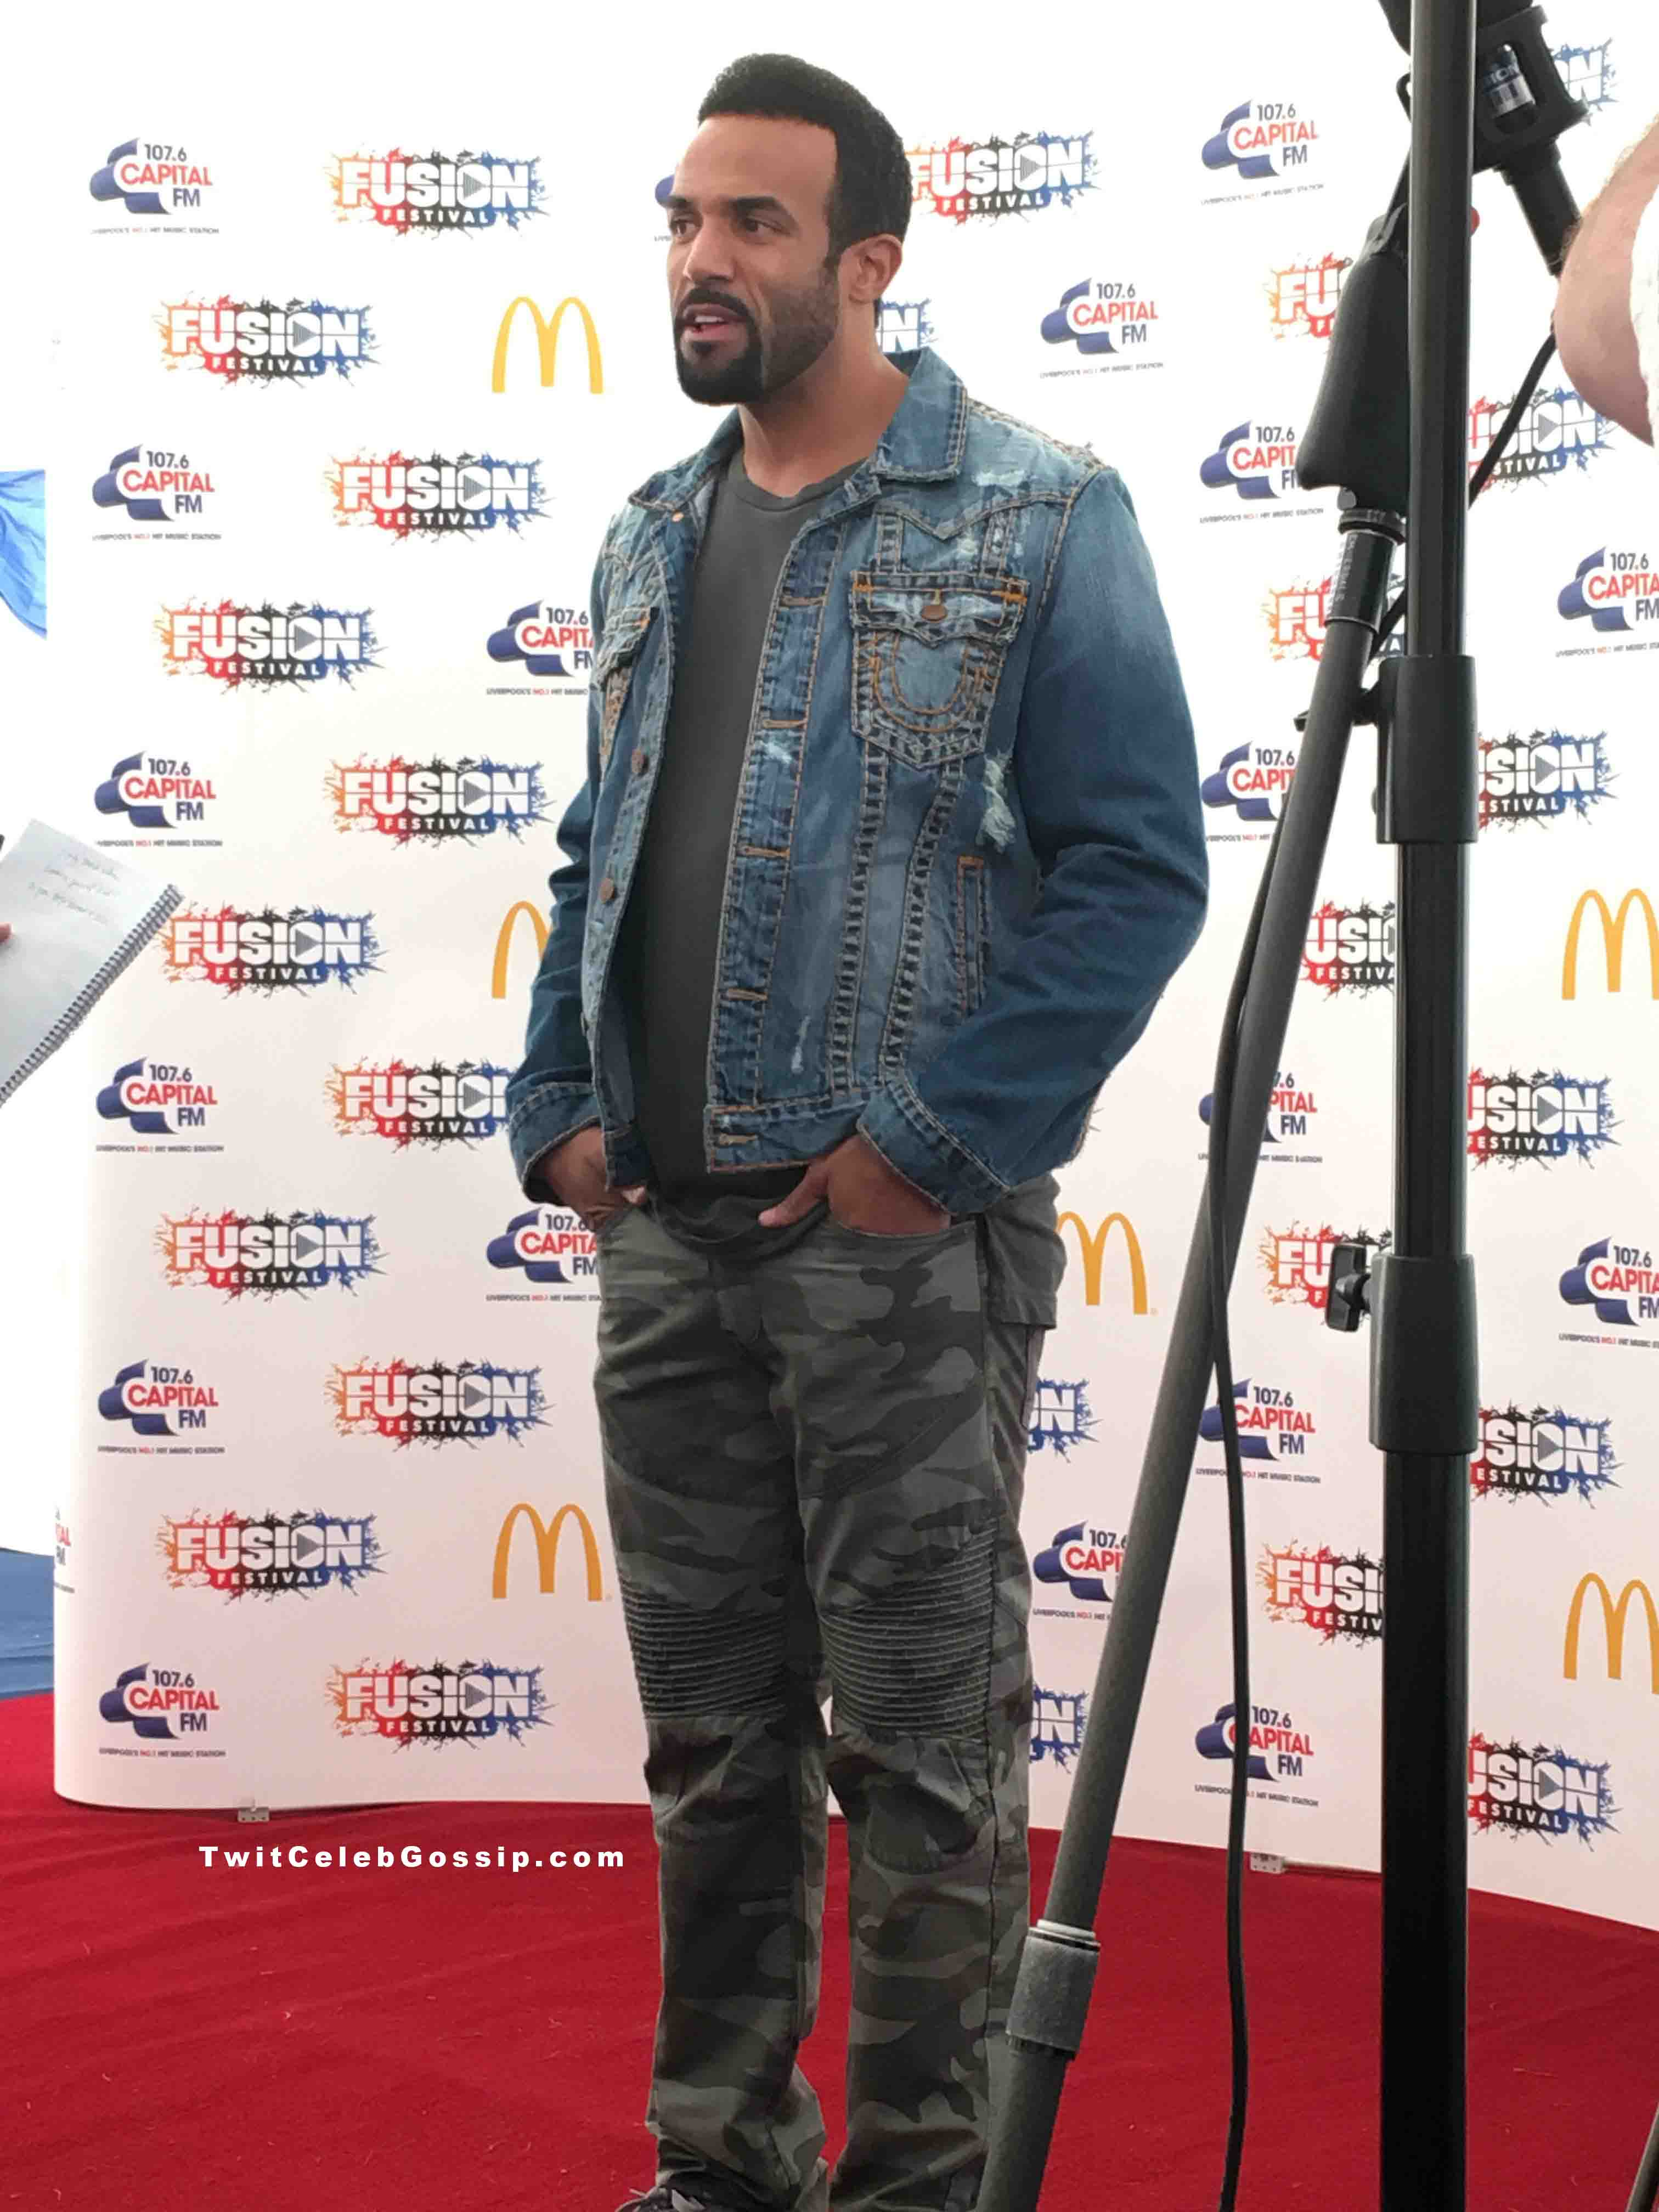 Craig David taking part in an interview at Fusion Festival